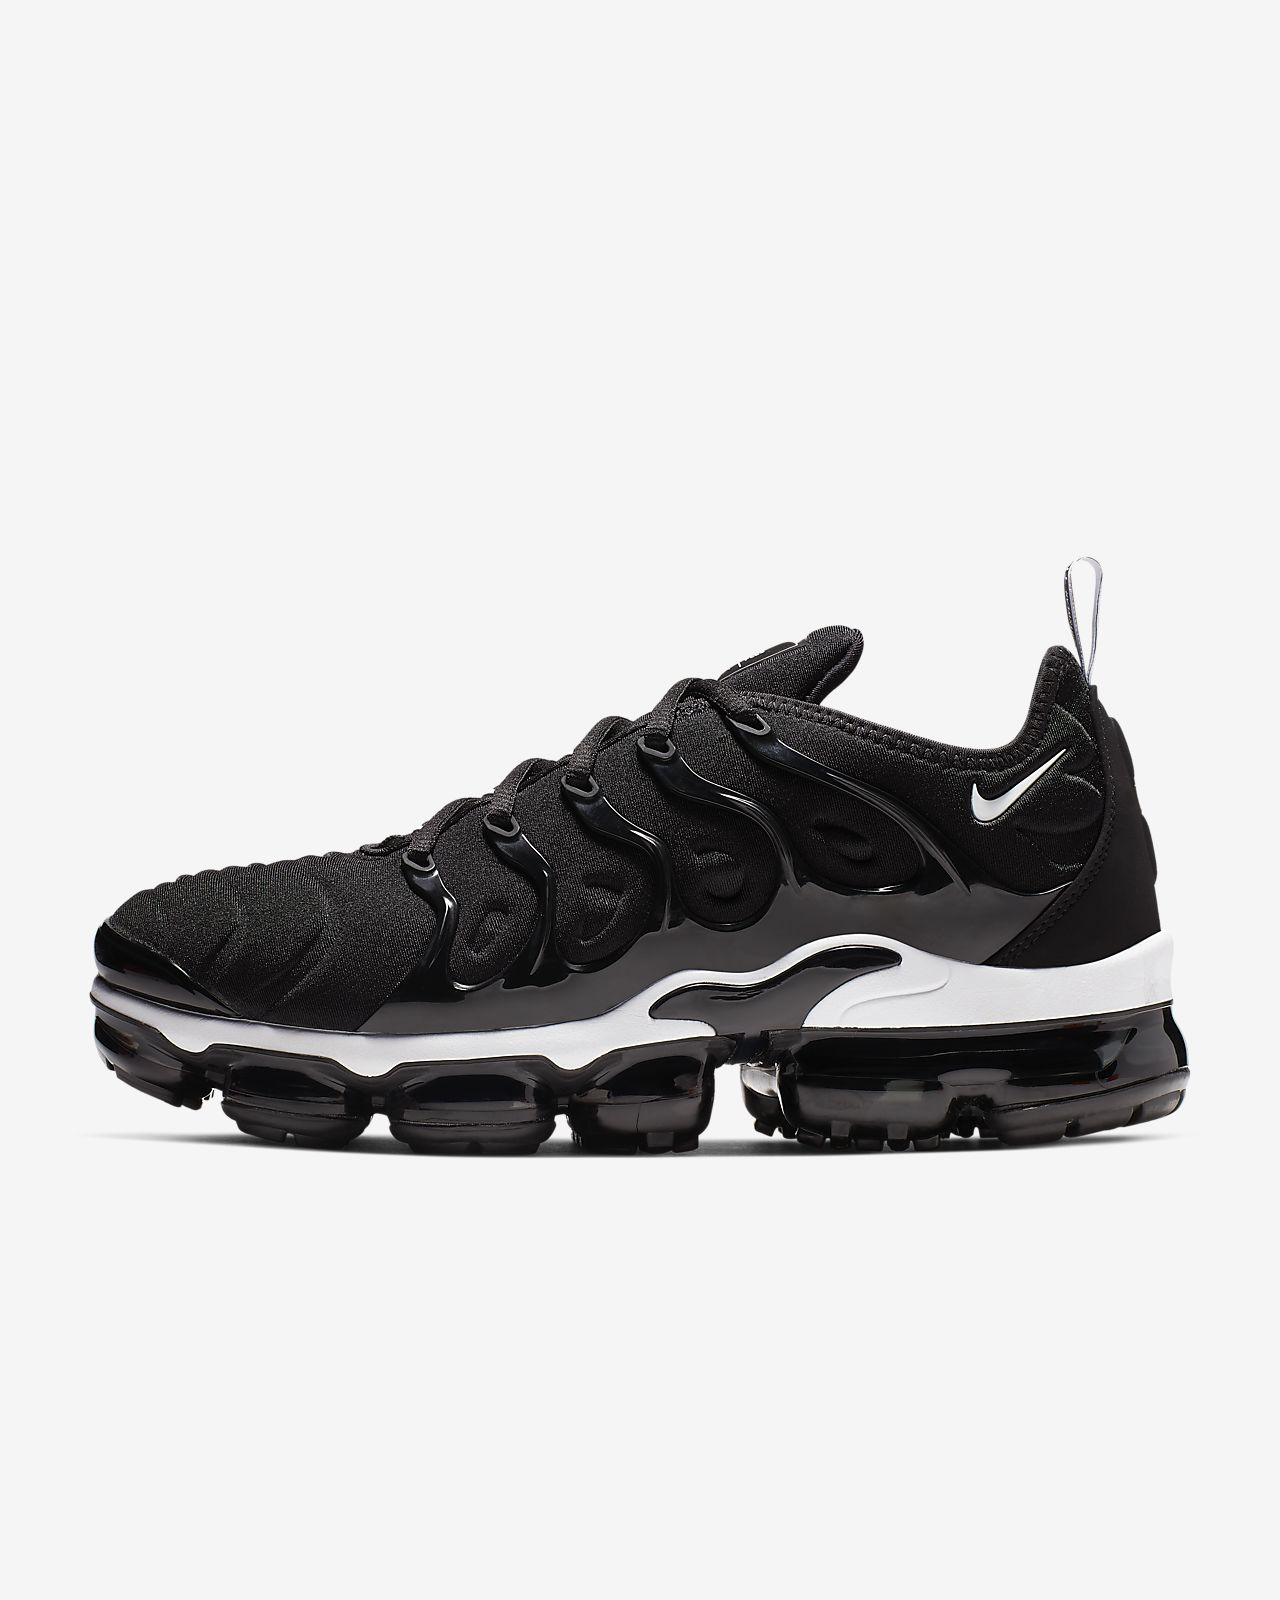 86d5390bfb475 Nike Air VaporMax Plus Men s Shoe. Nike.com CA